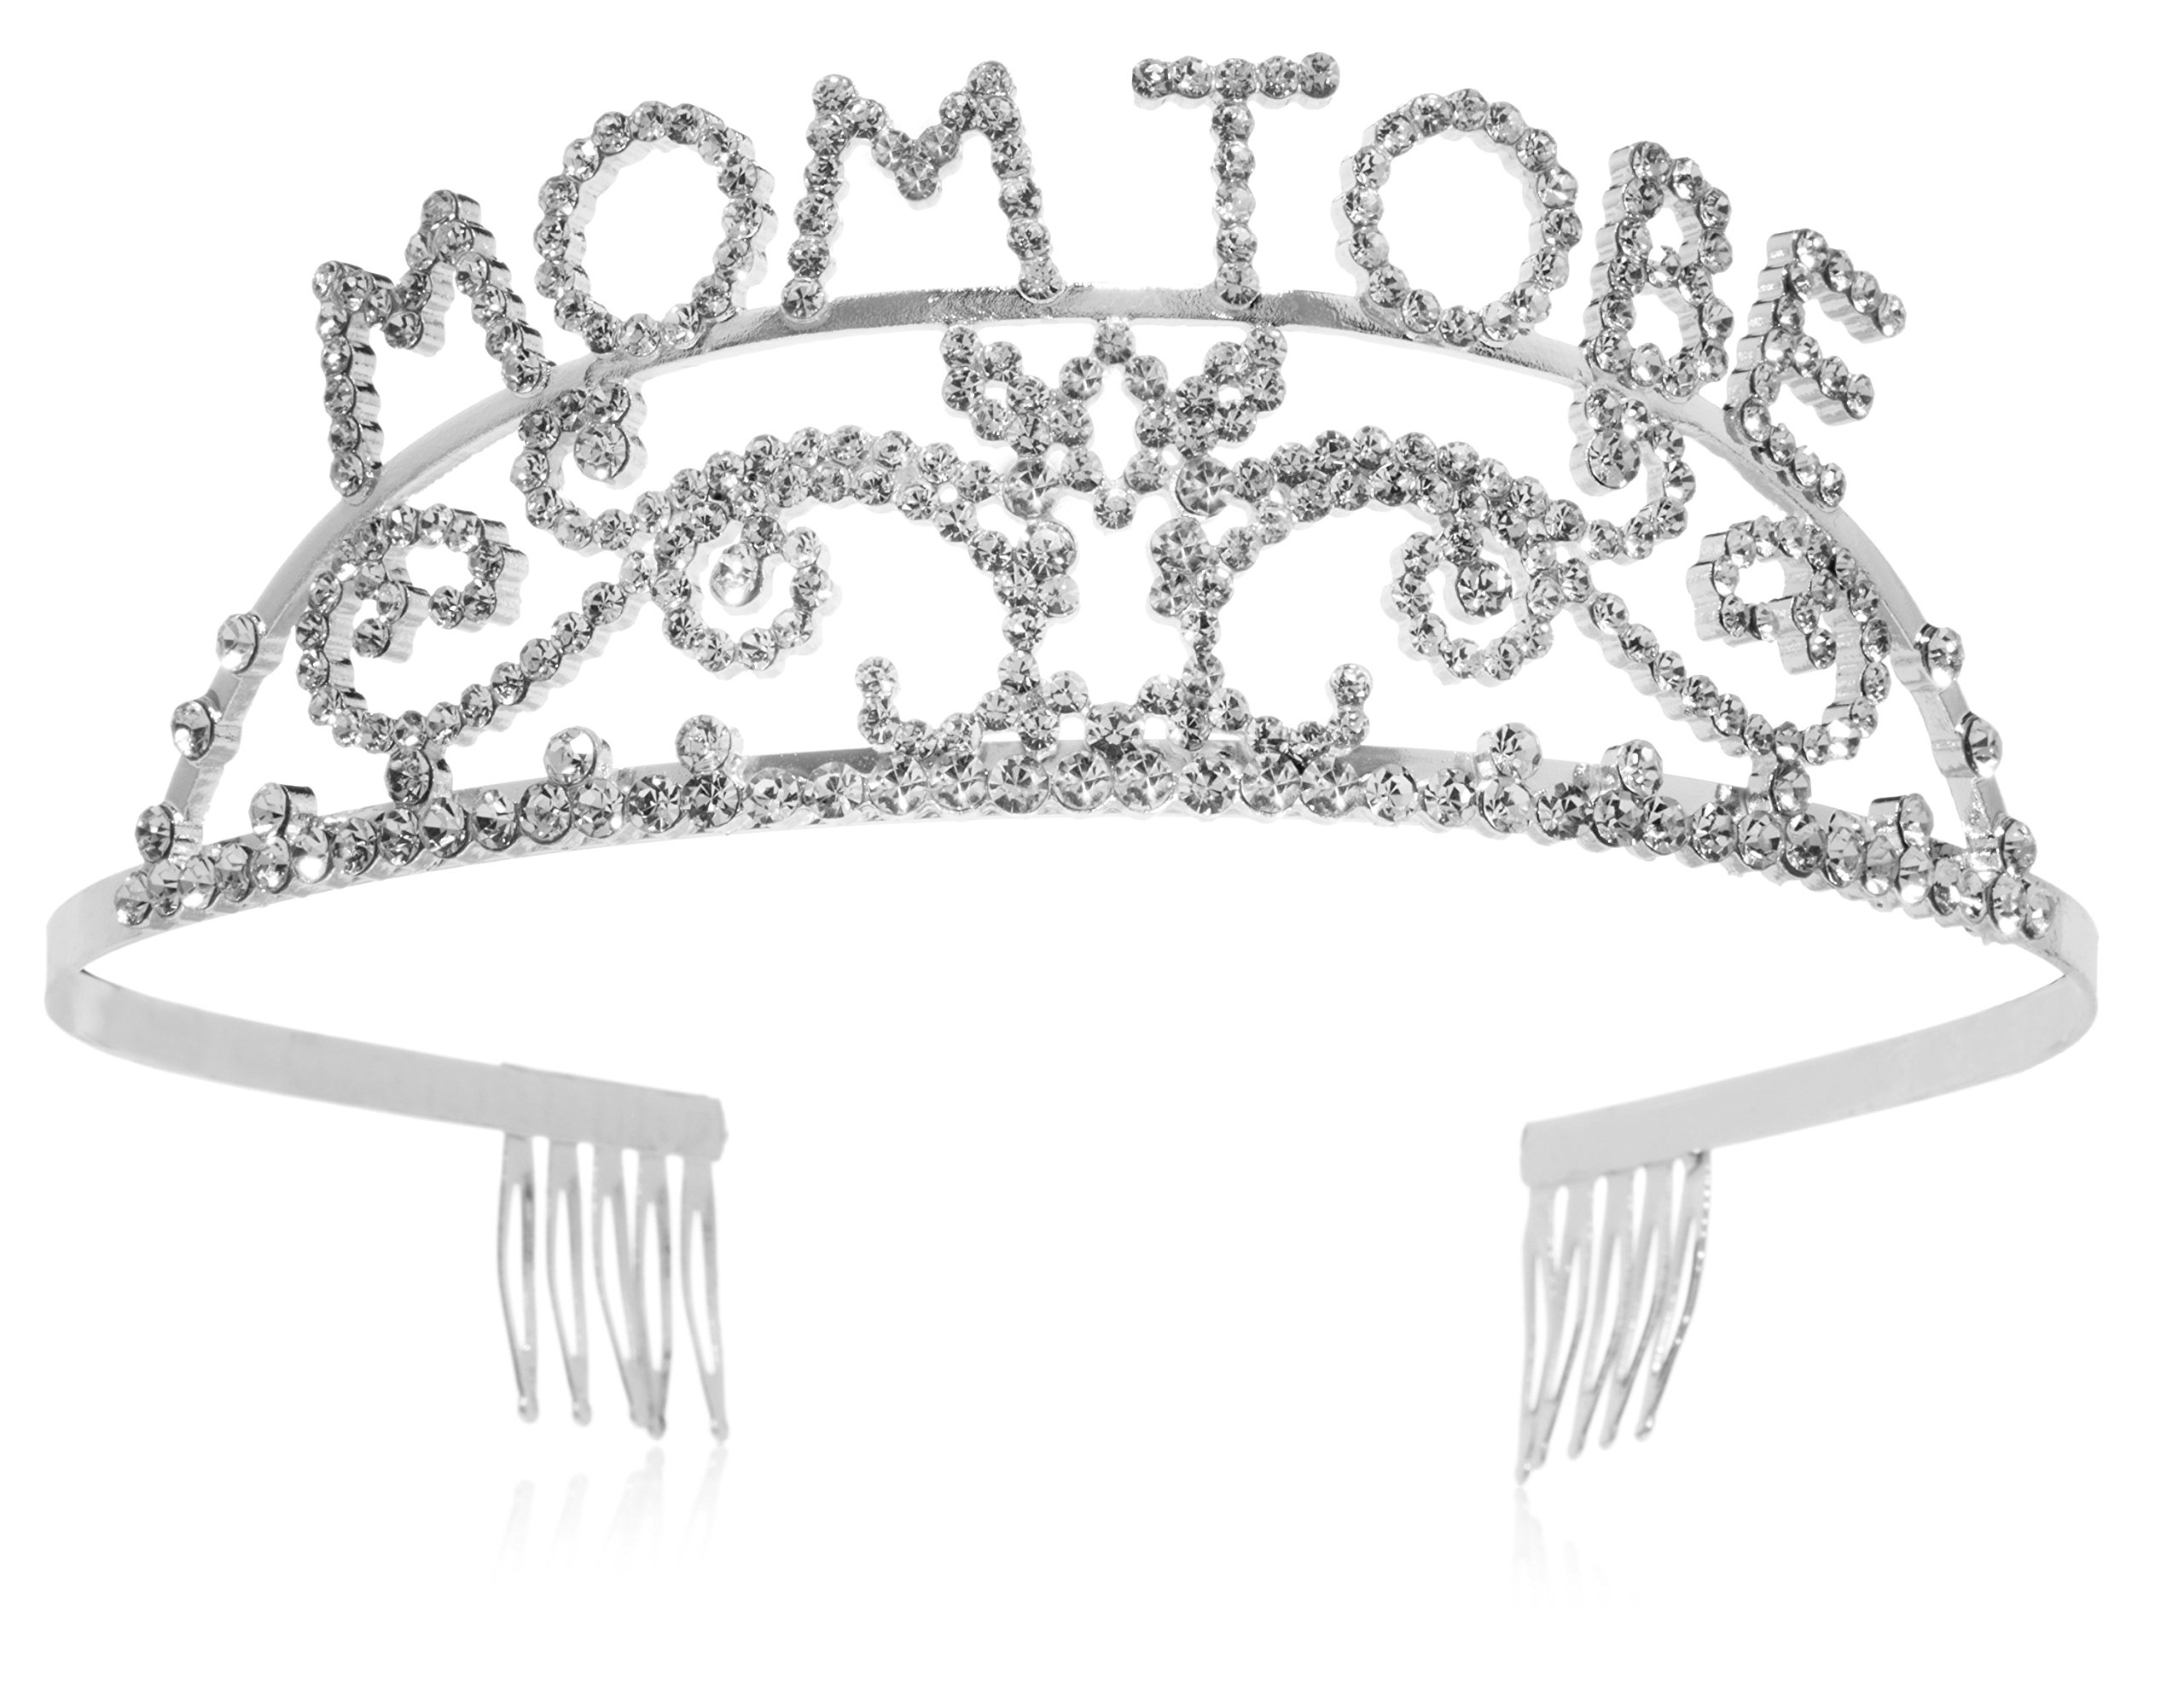 Elegant Rhinestone Mom to Be Tiara - Premium Quality Metal Baby Shower Tiara for the Mother to Be, Great Mother's Day Gift Idea for New Moms